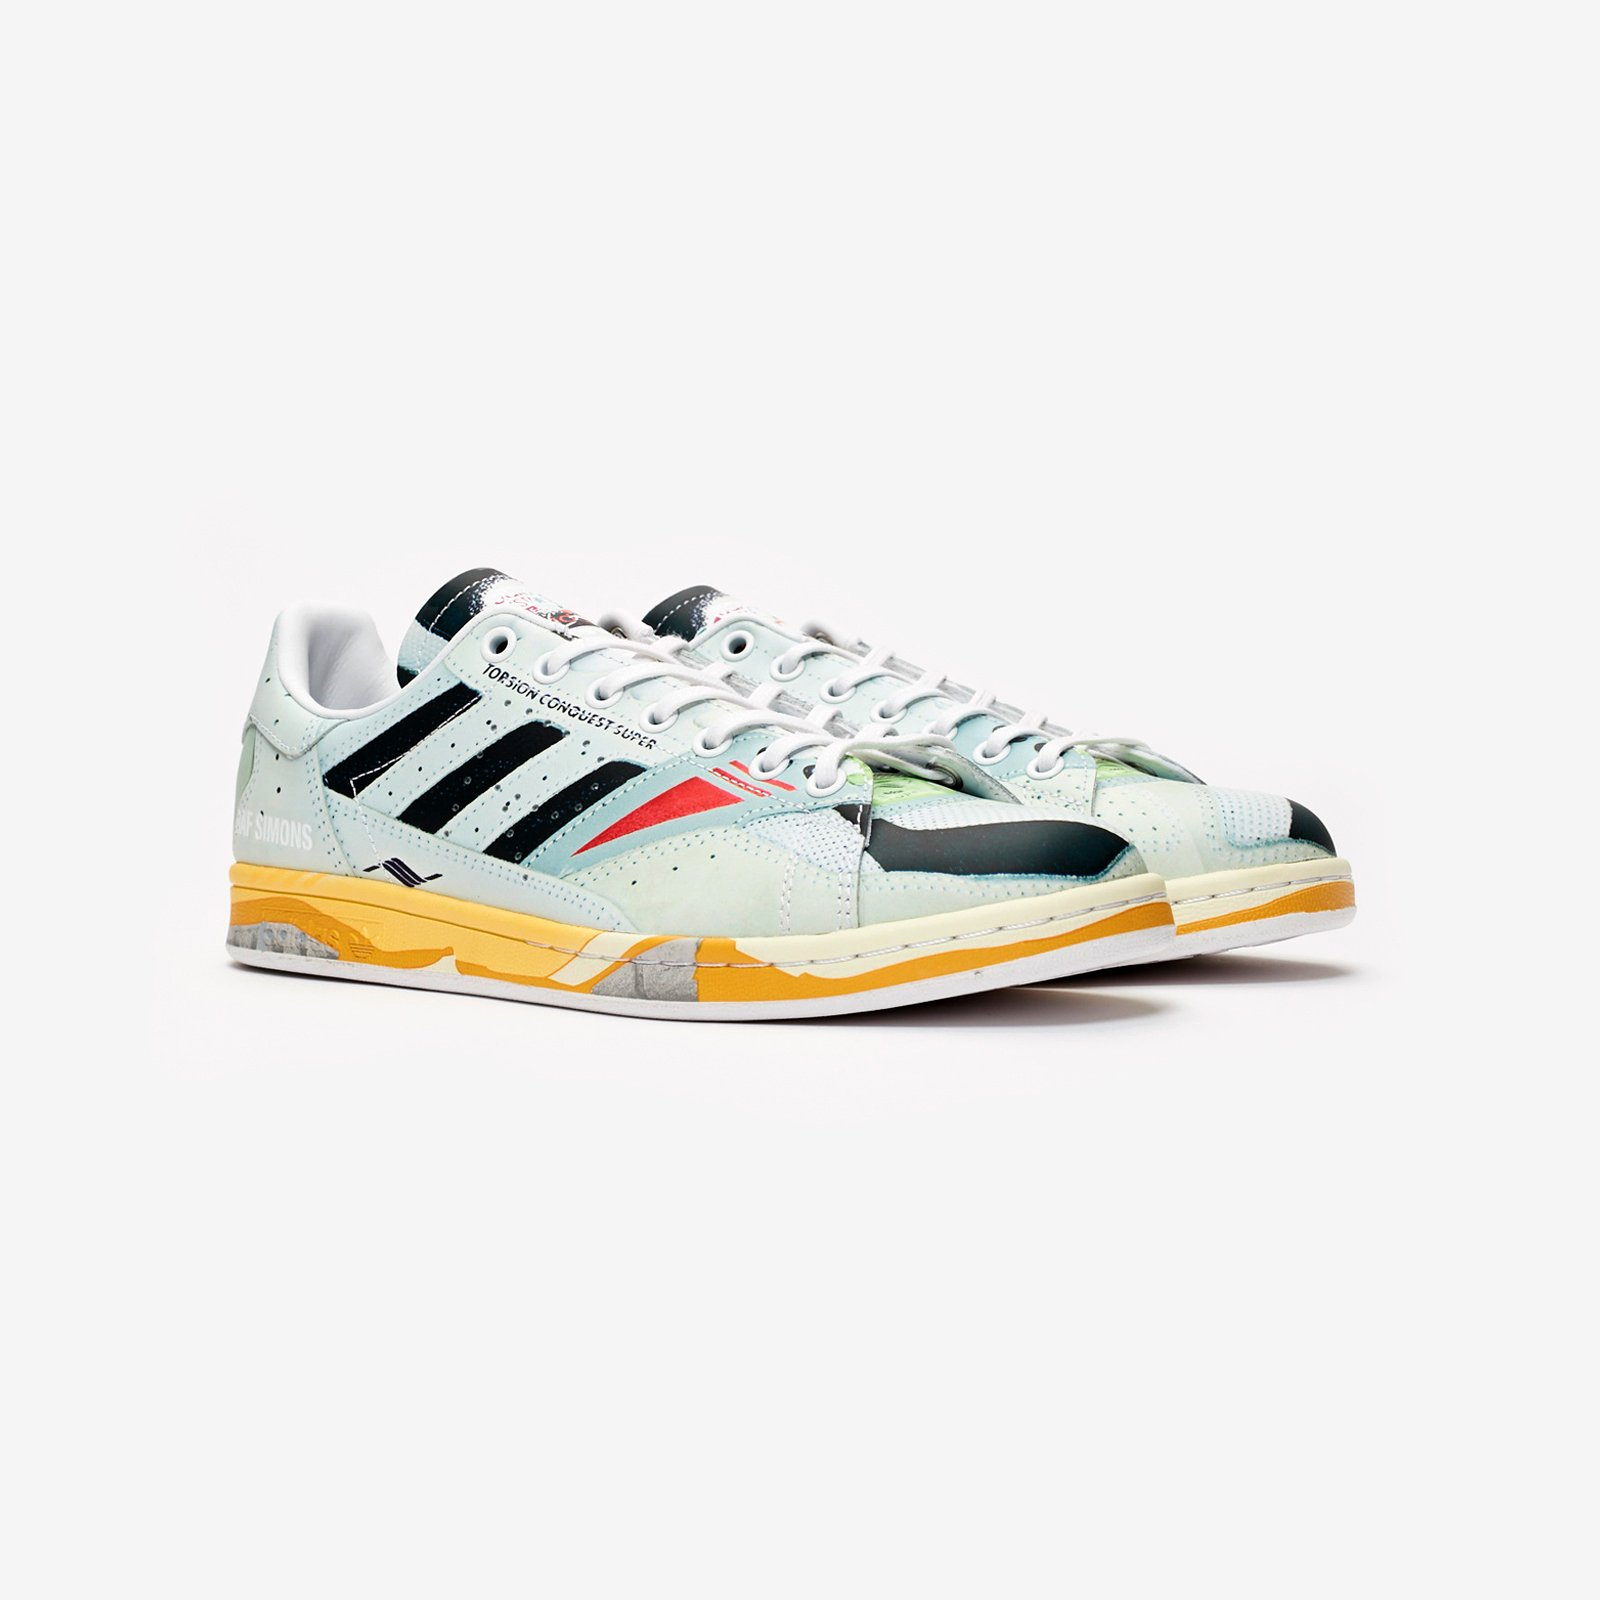 6a515ce54 adidas RS Torsion Stan - Ee7953 - Sneakersnstuff